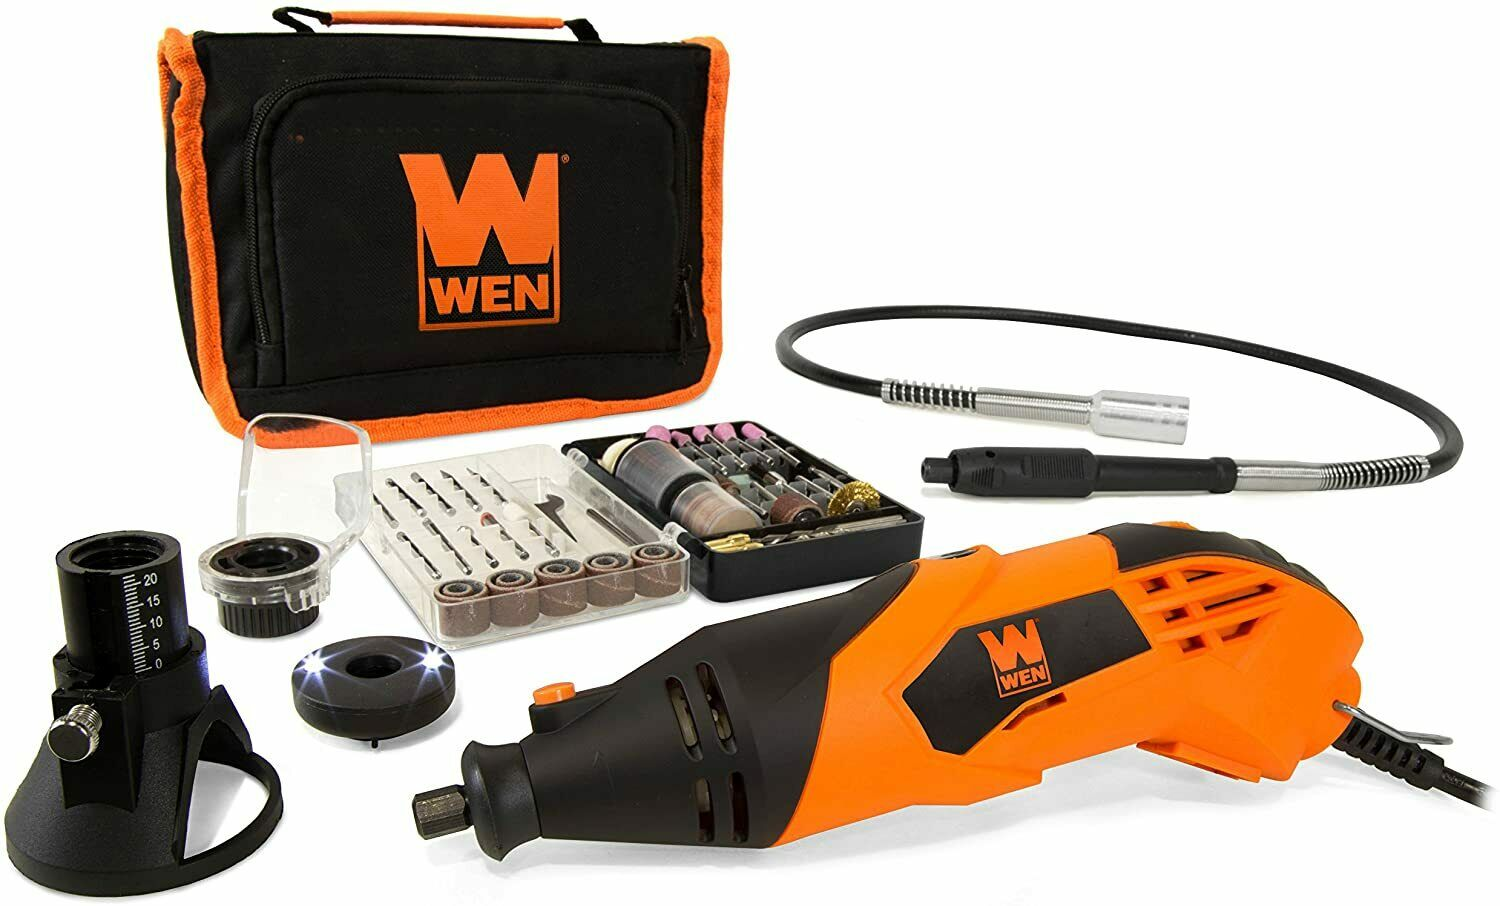 WEN 23114 1.4-Amp High-Powered Variable Speed Rotary Tool wi